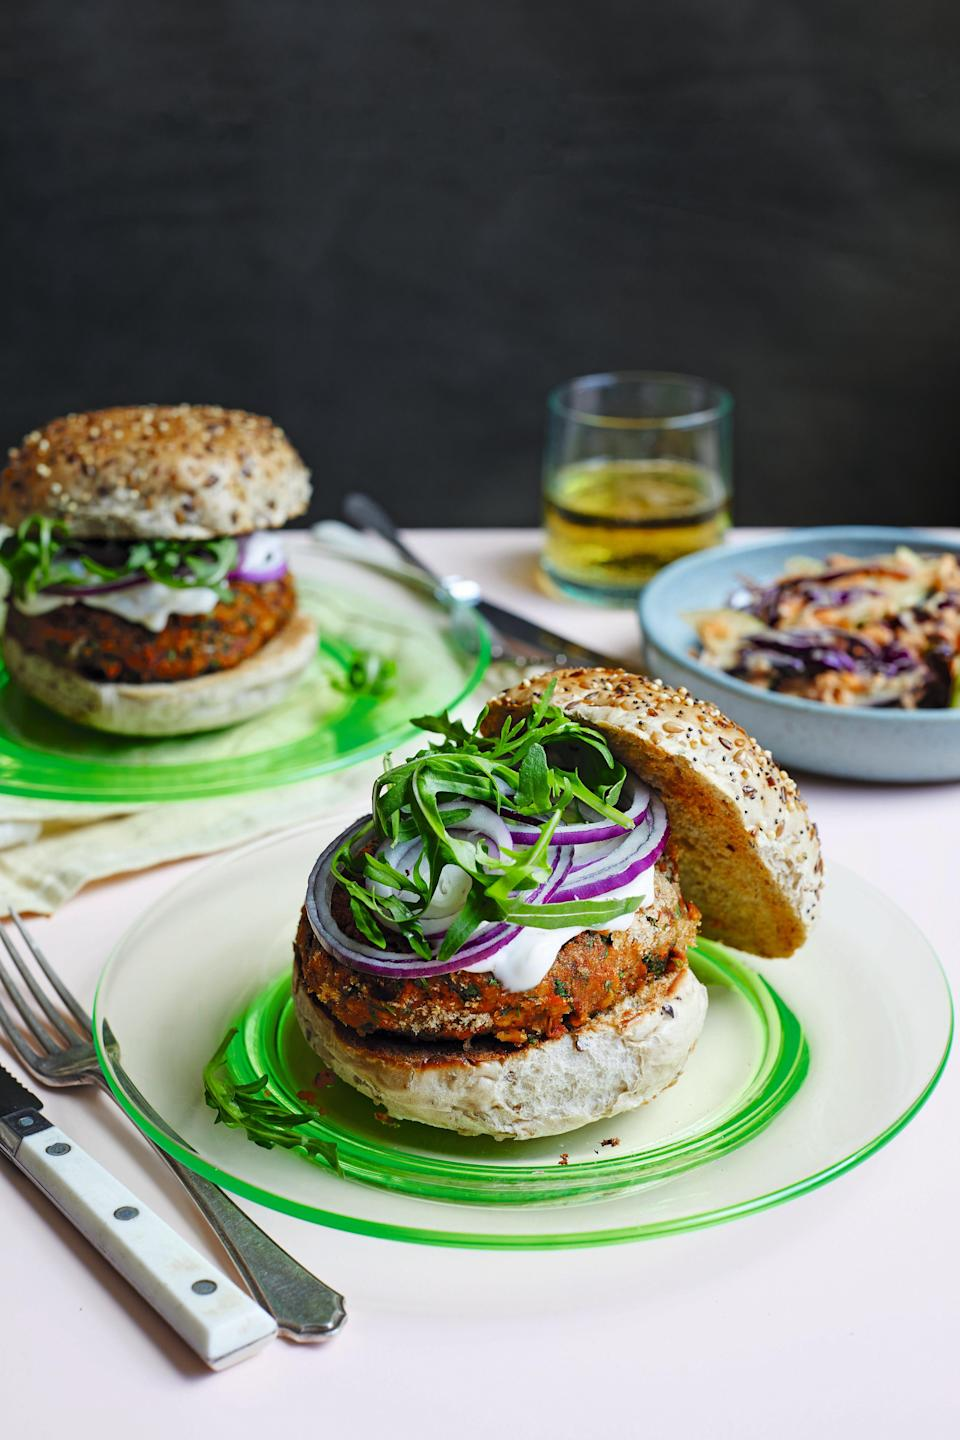 Quick, simple and satisfying burgers for when the need arisesKaty Beskow